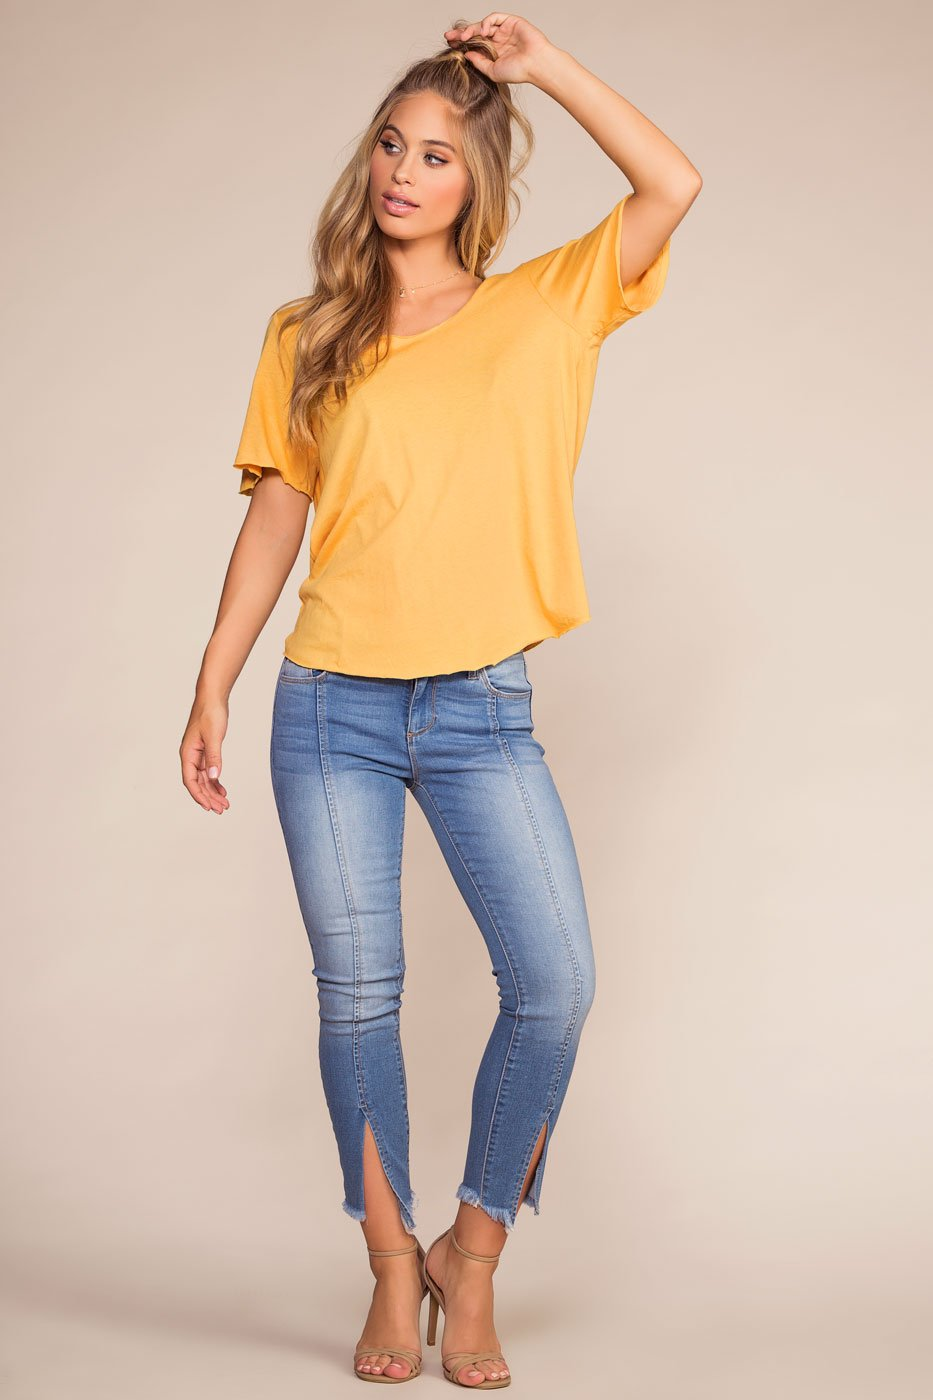 Tops - In The Raw Open Back Tee - Mustard